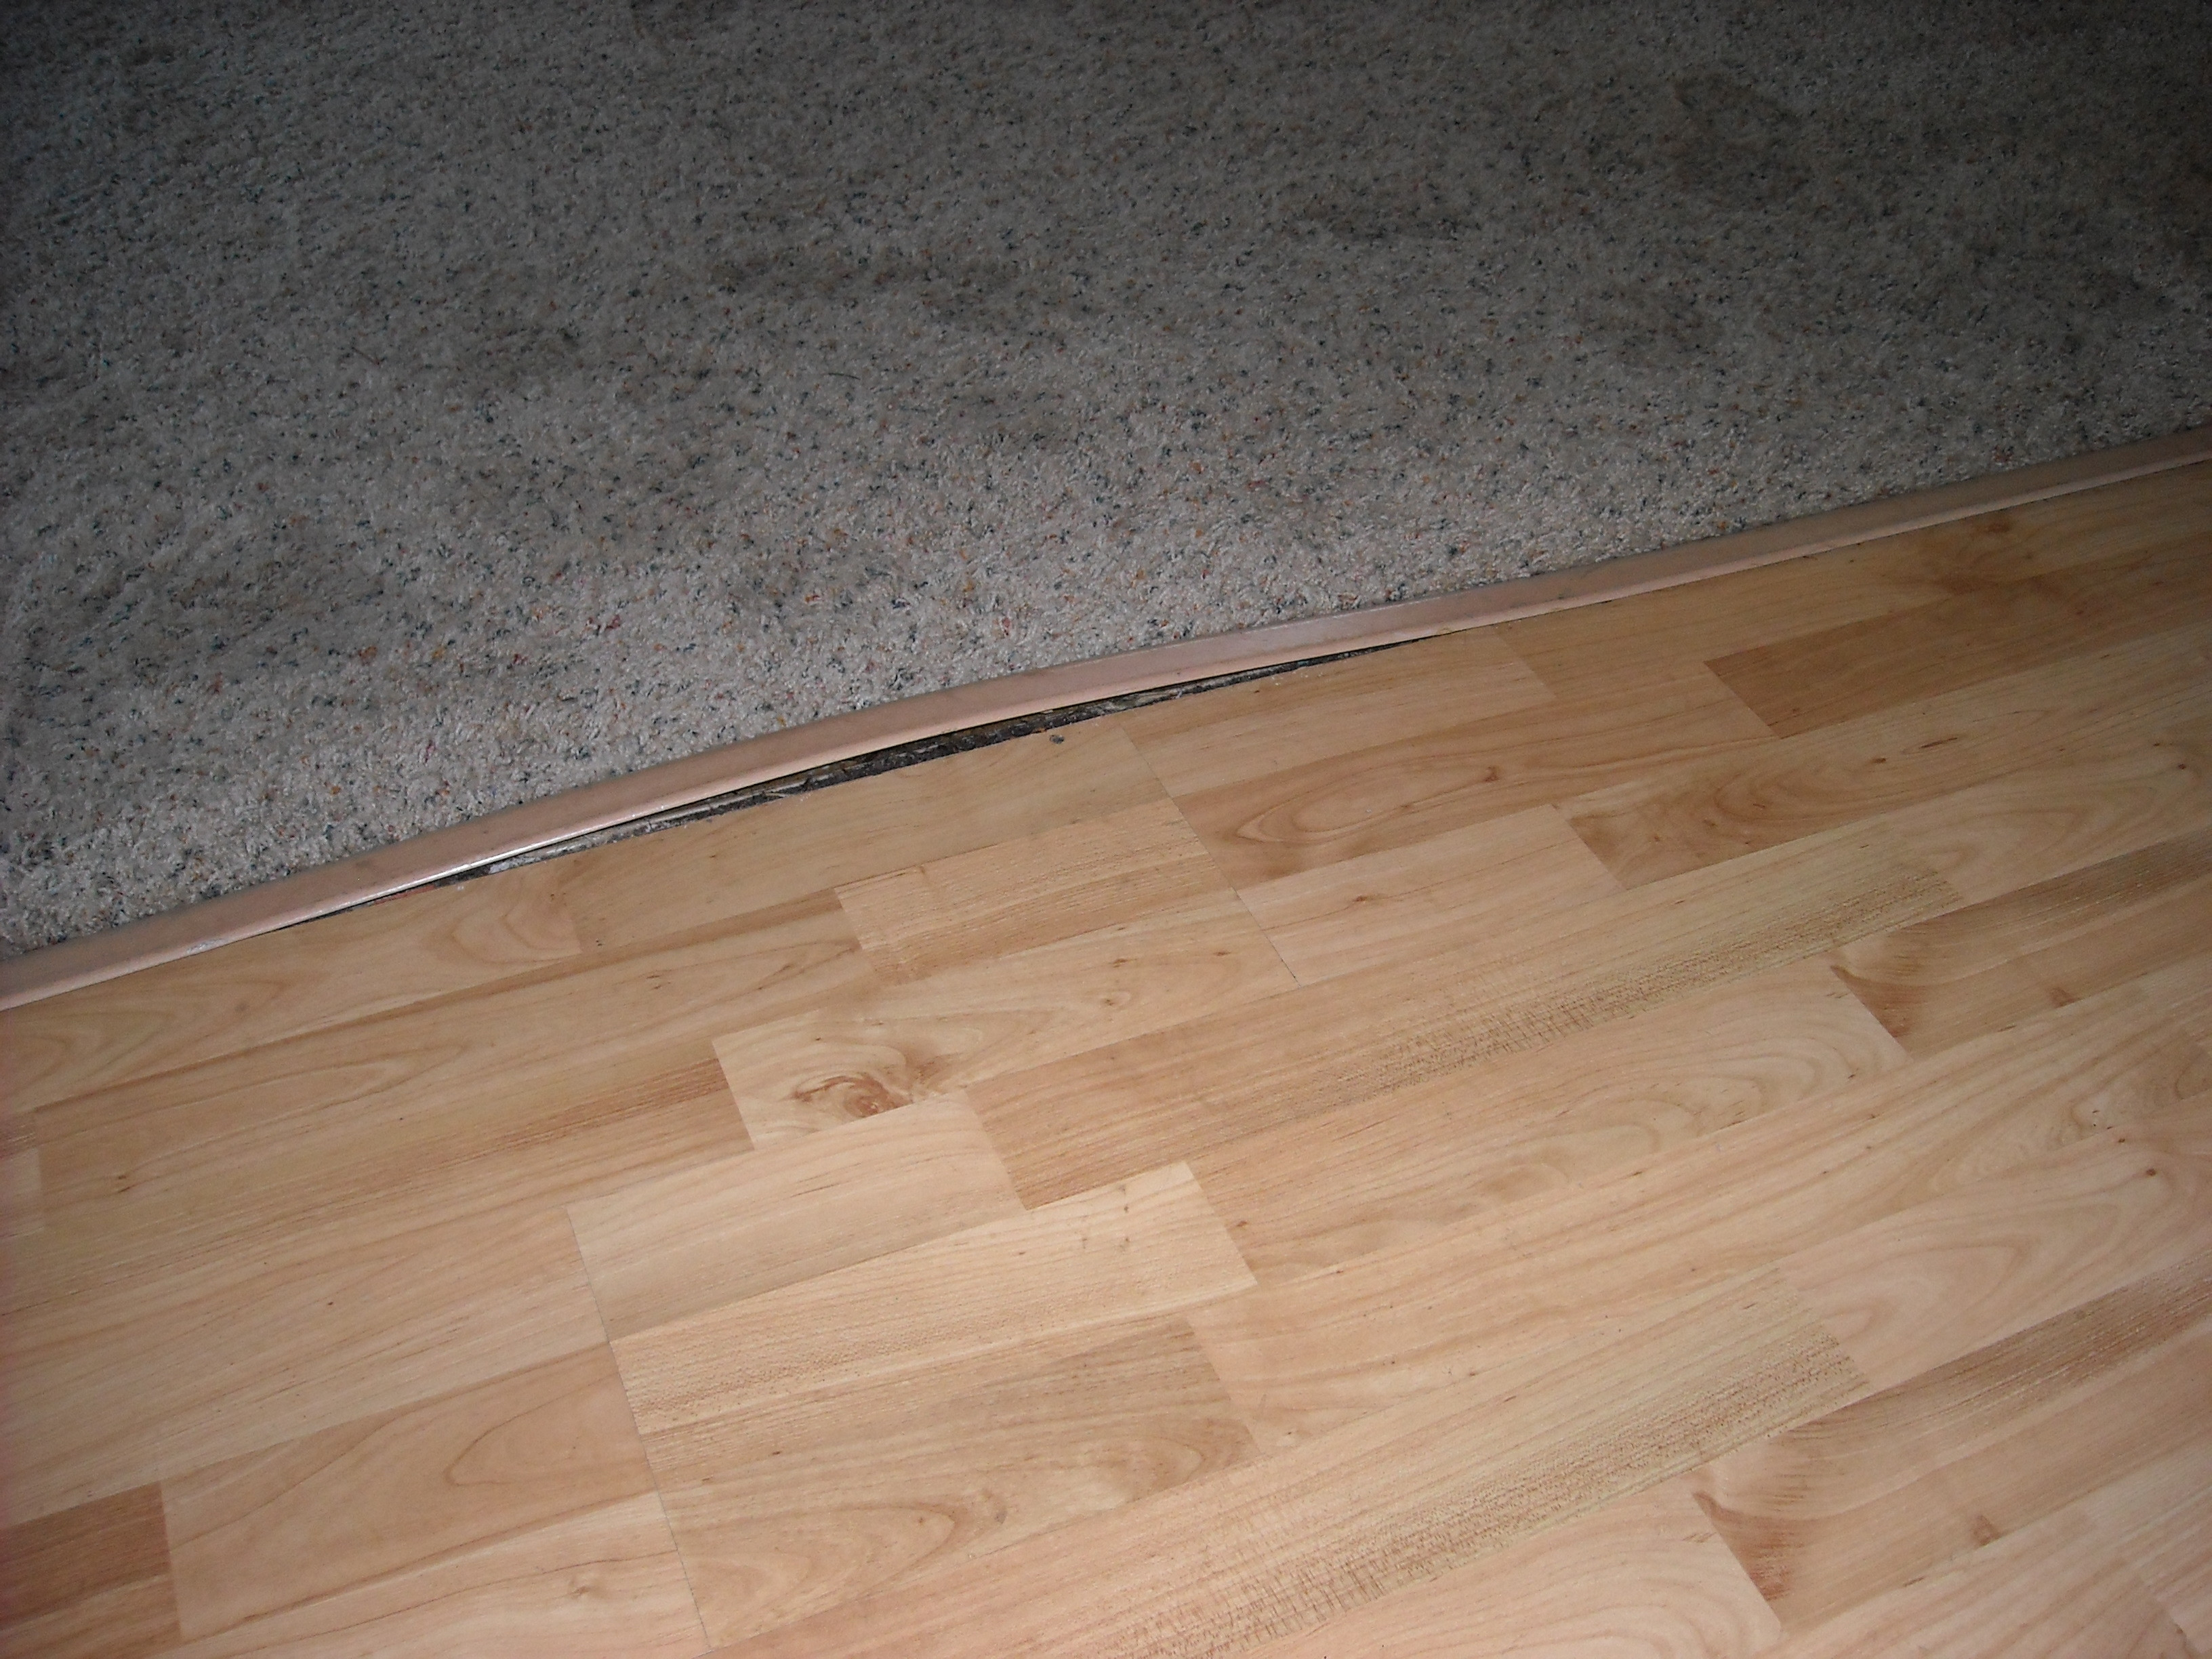 how to fix buckled hardwood floor of how to fix laminate flooring that is buckling floor in how to fix laminate flooring that is buckling laminate water damage best mold under top layer